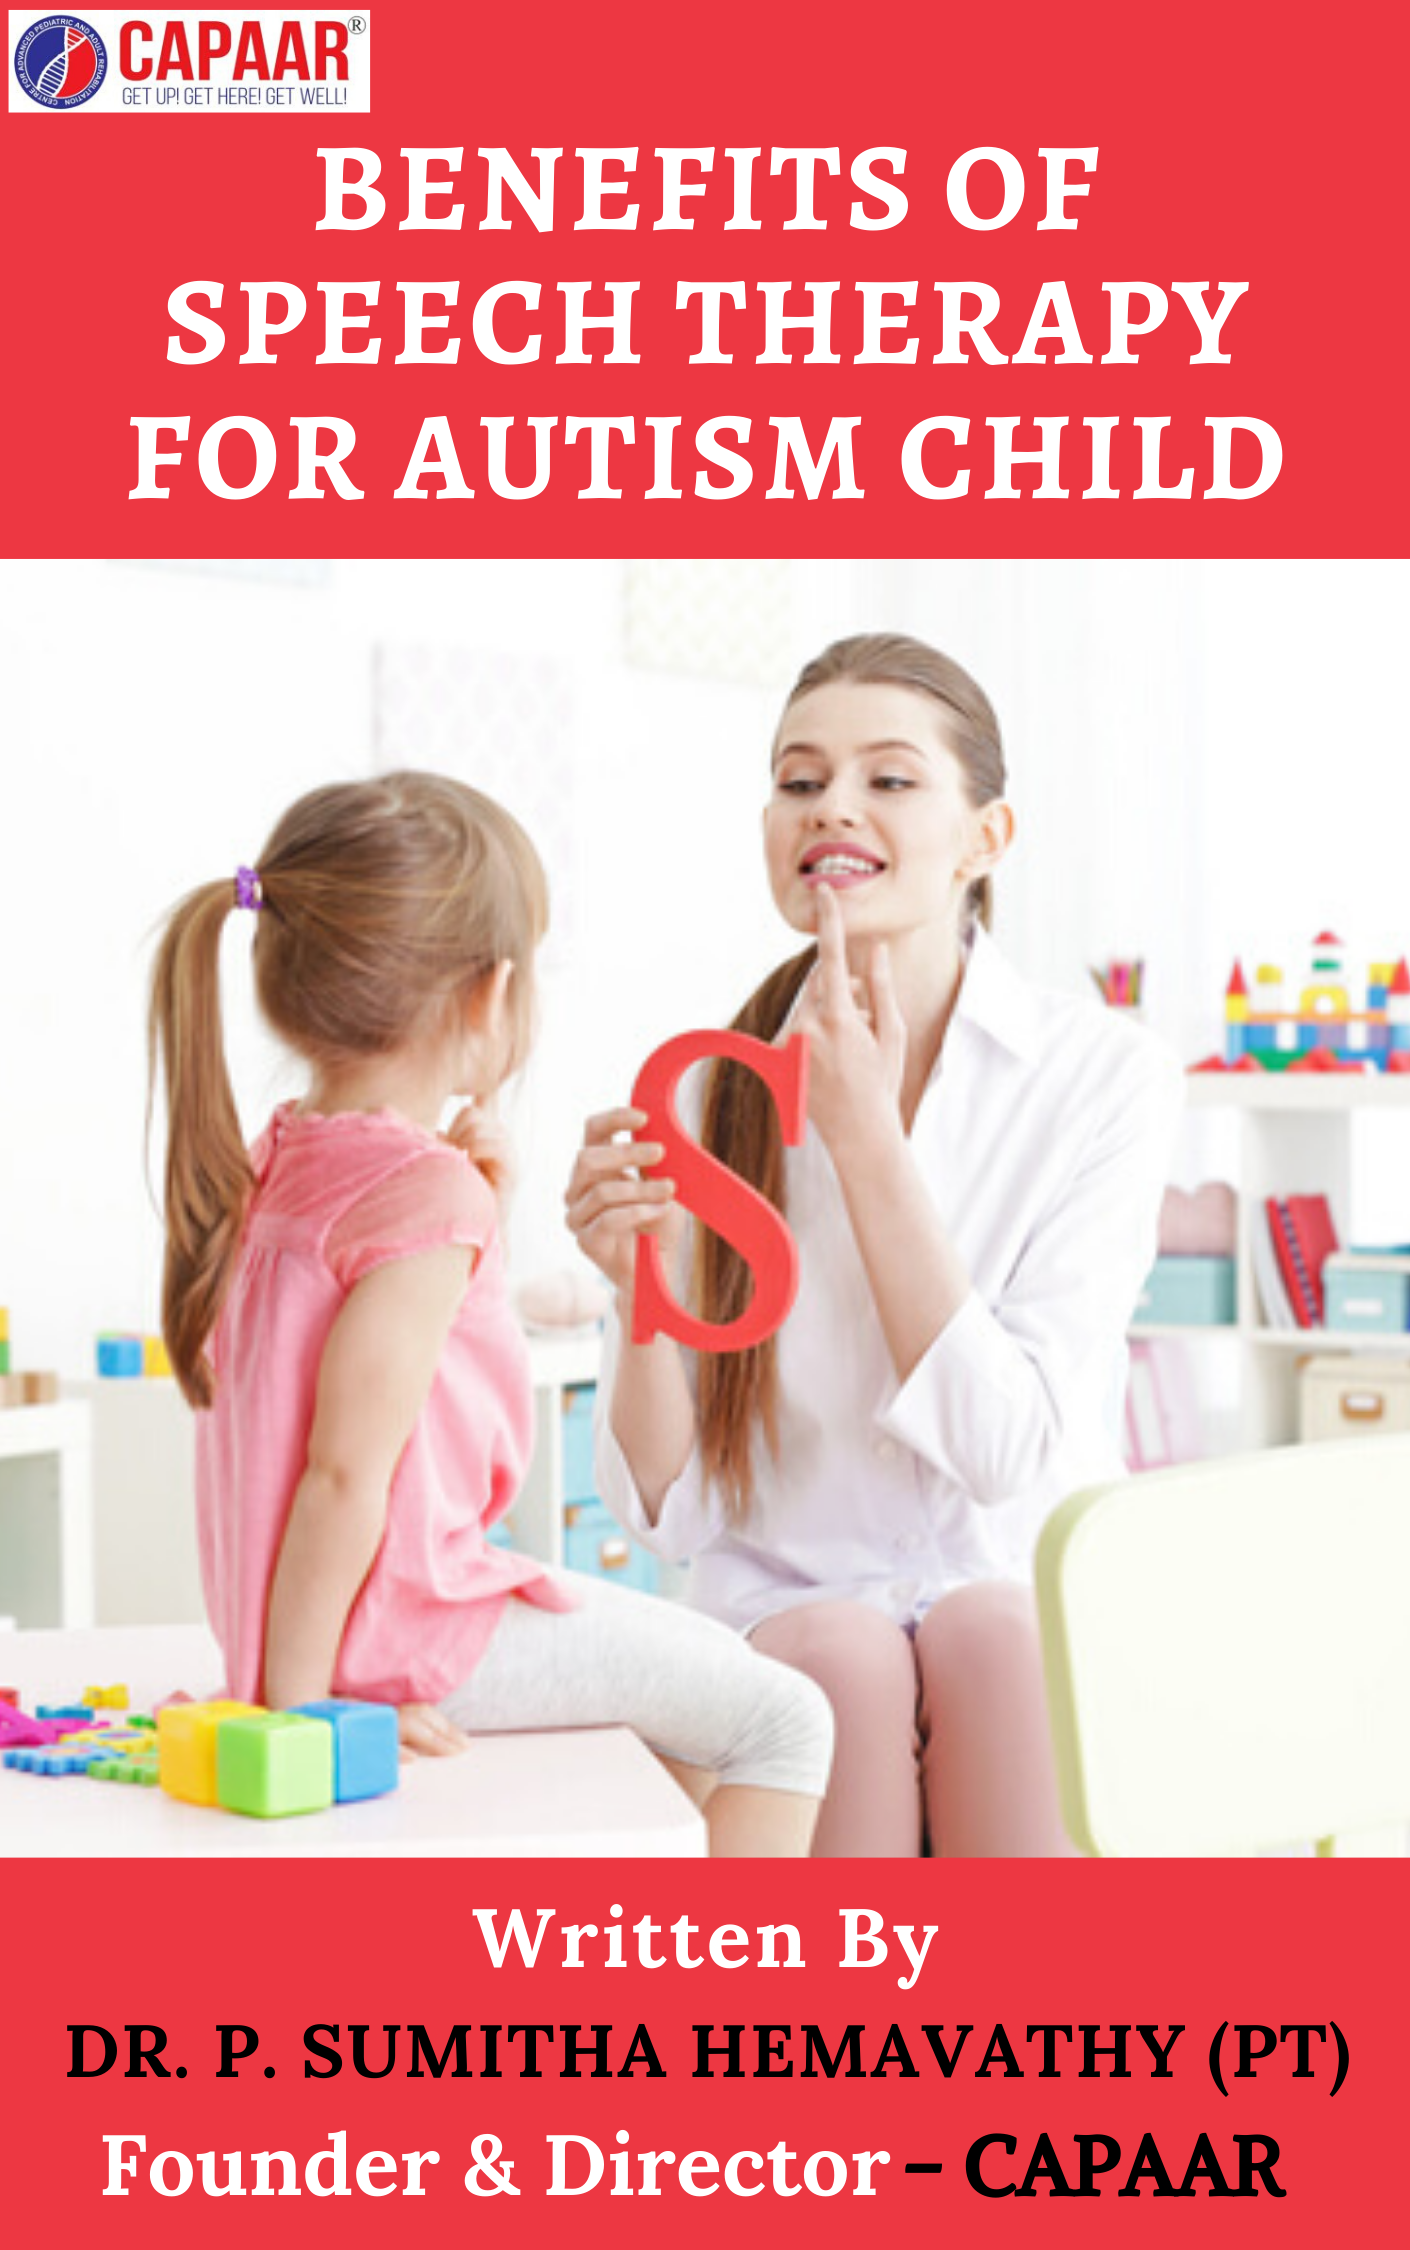 Benefits of Speech Therapy for Autism Child